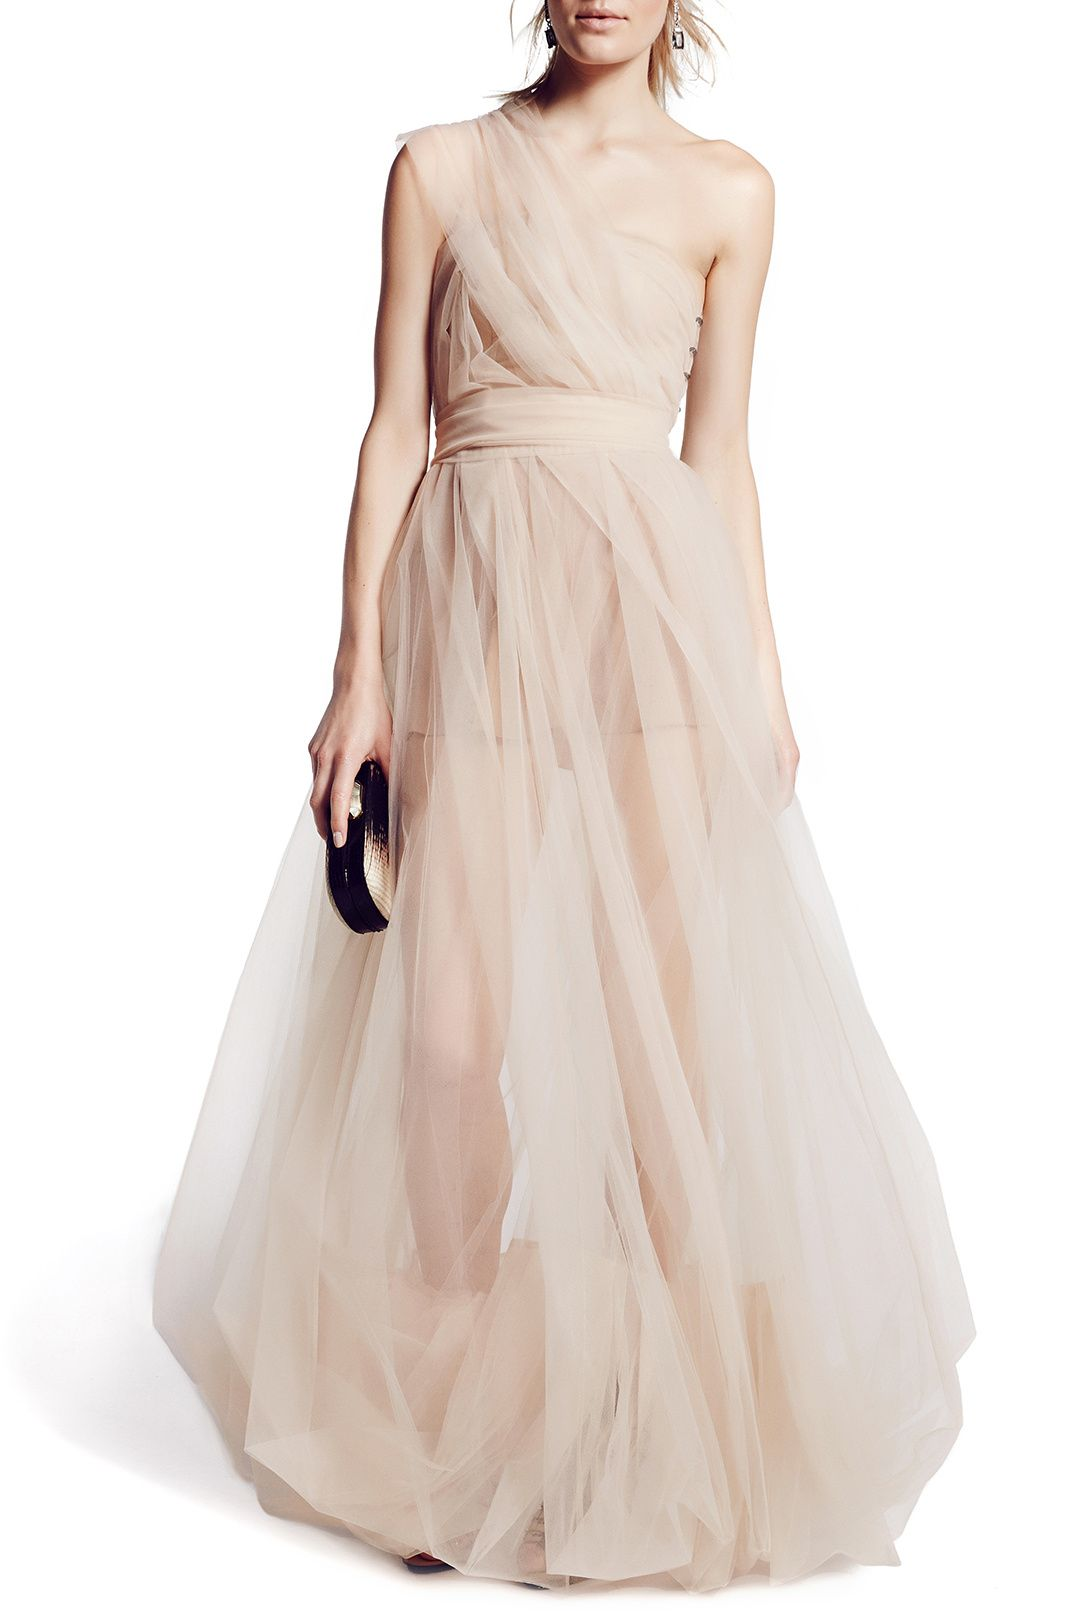 Rent wedding dresses  Swept Up Gown  My Style Gowns  Pinterest  Gowns Clothes and Prom